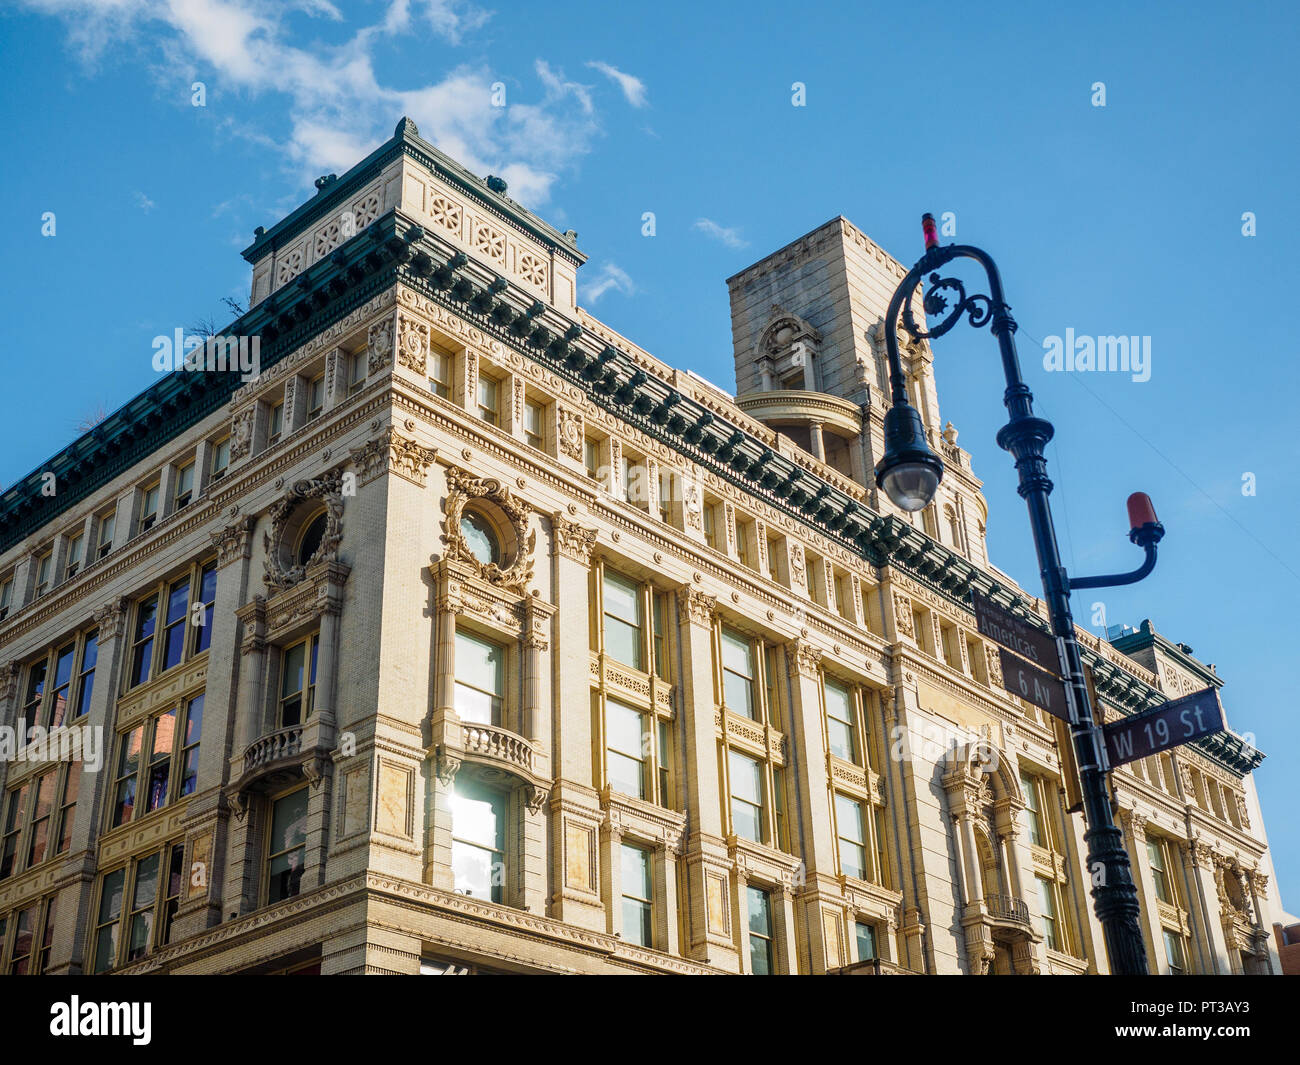 Department Store At 620 Sixth Avenue In The Flatiron District Designed By DeLemos Cordes New York City NY USA